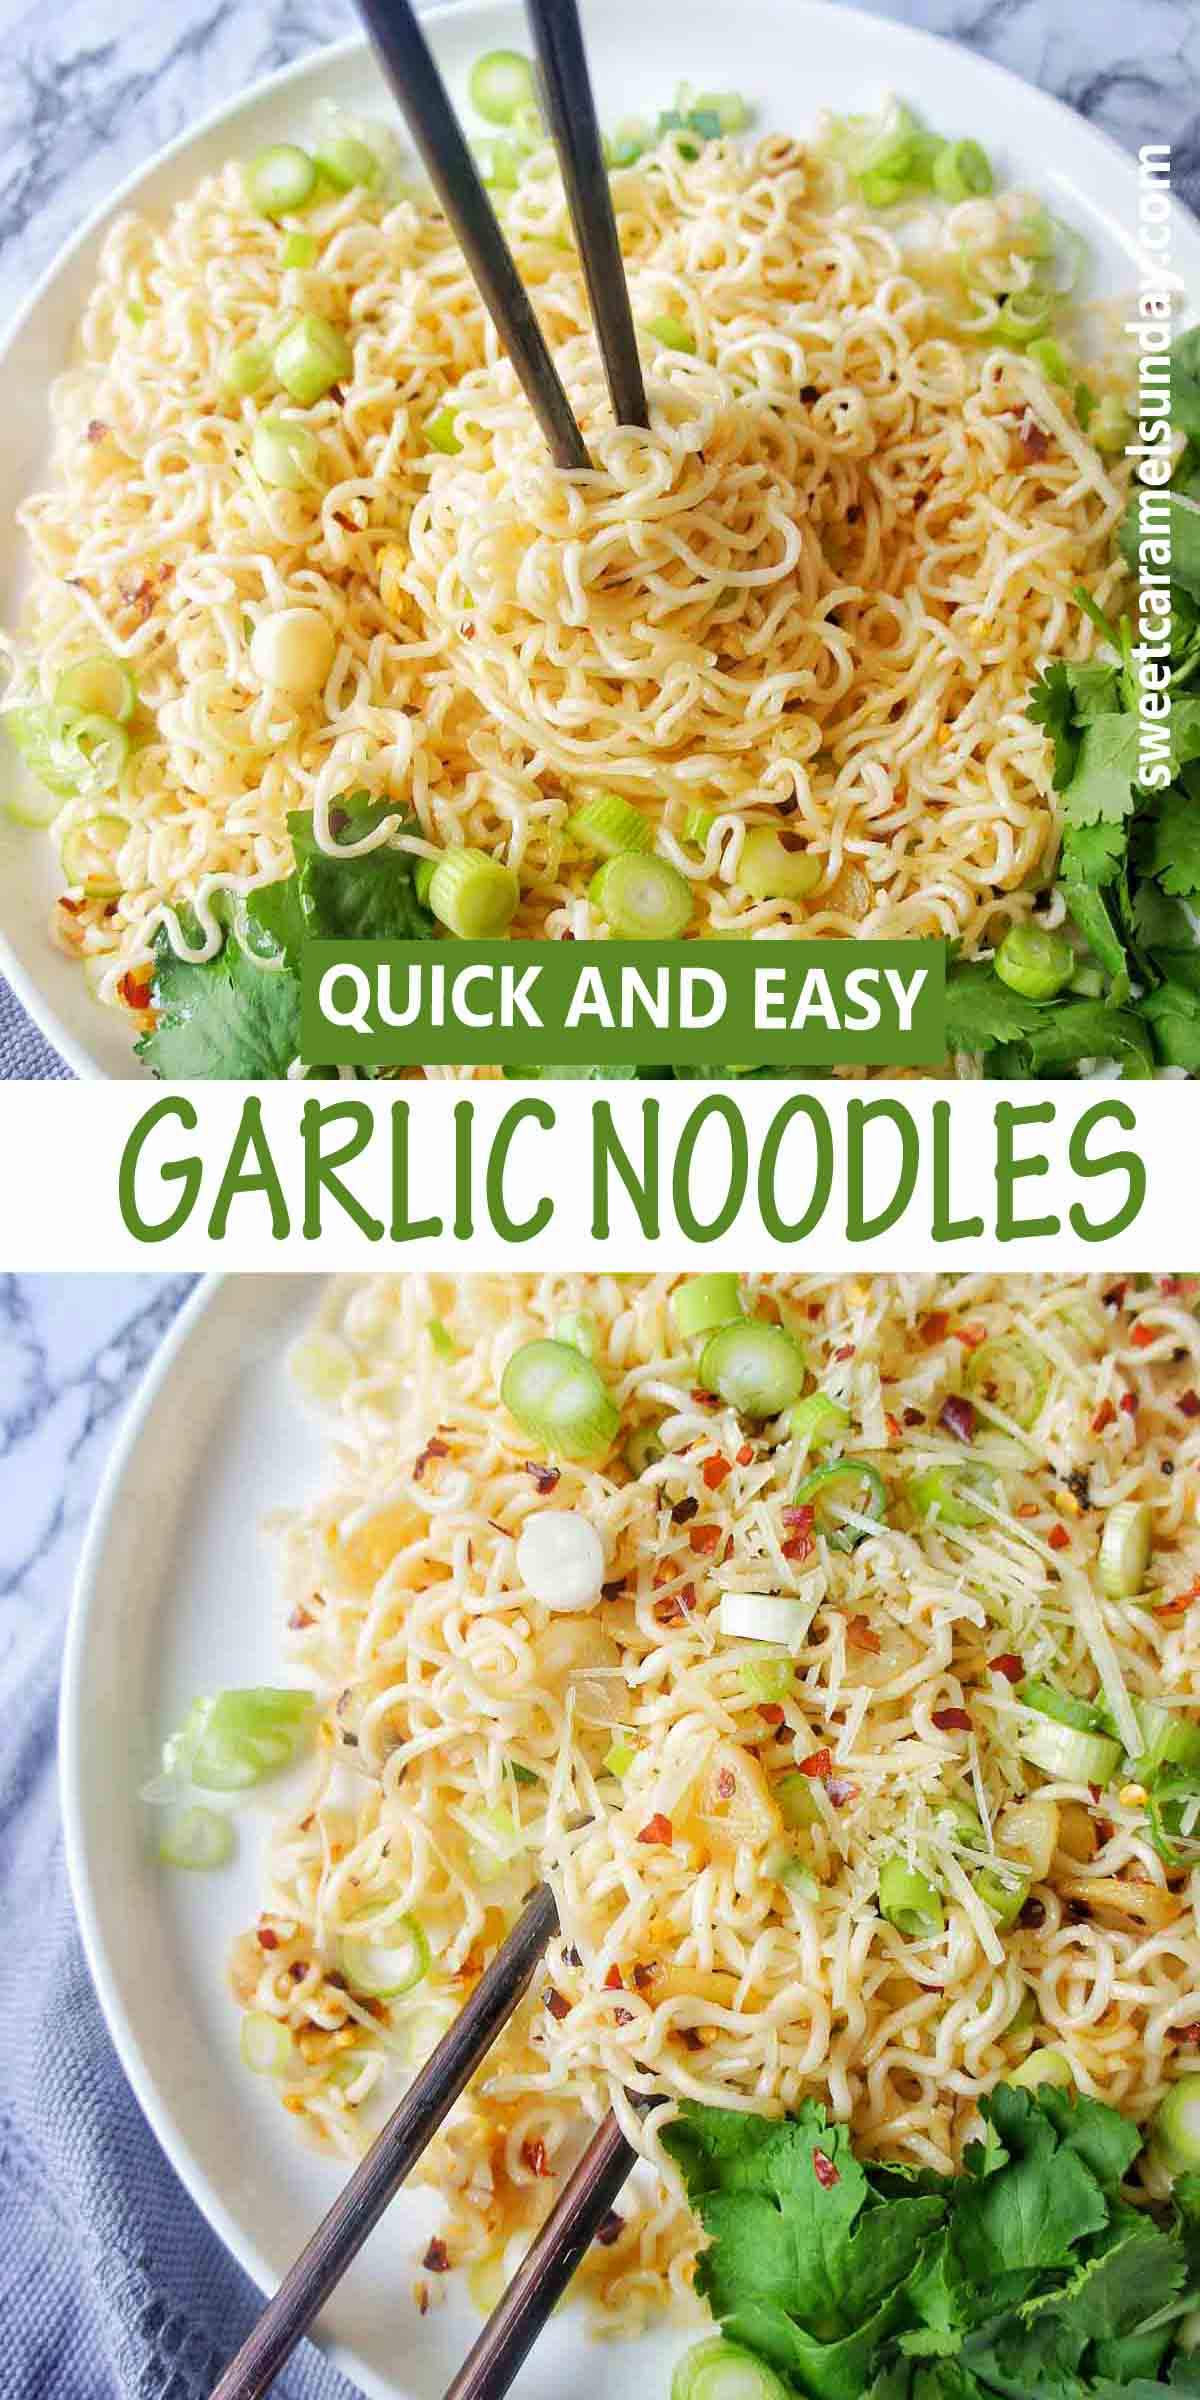 Garlic Noodles with text overlay